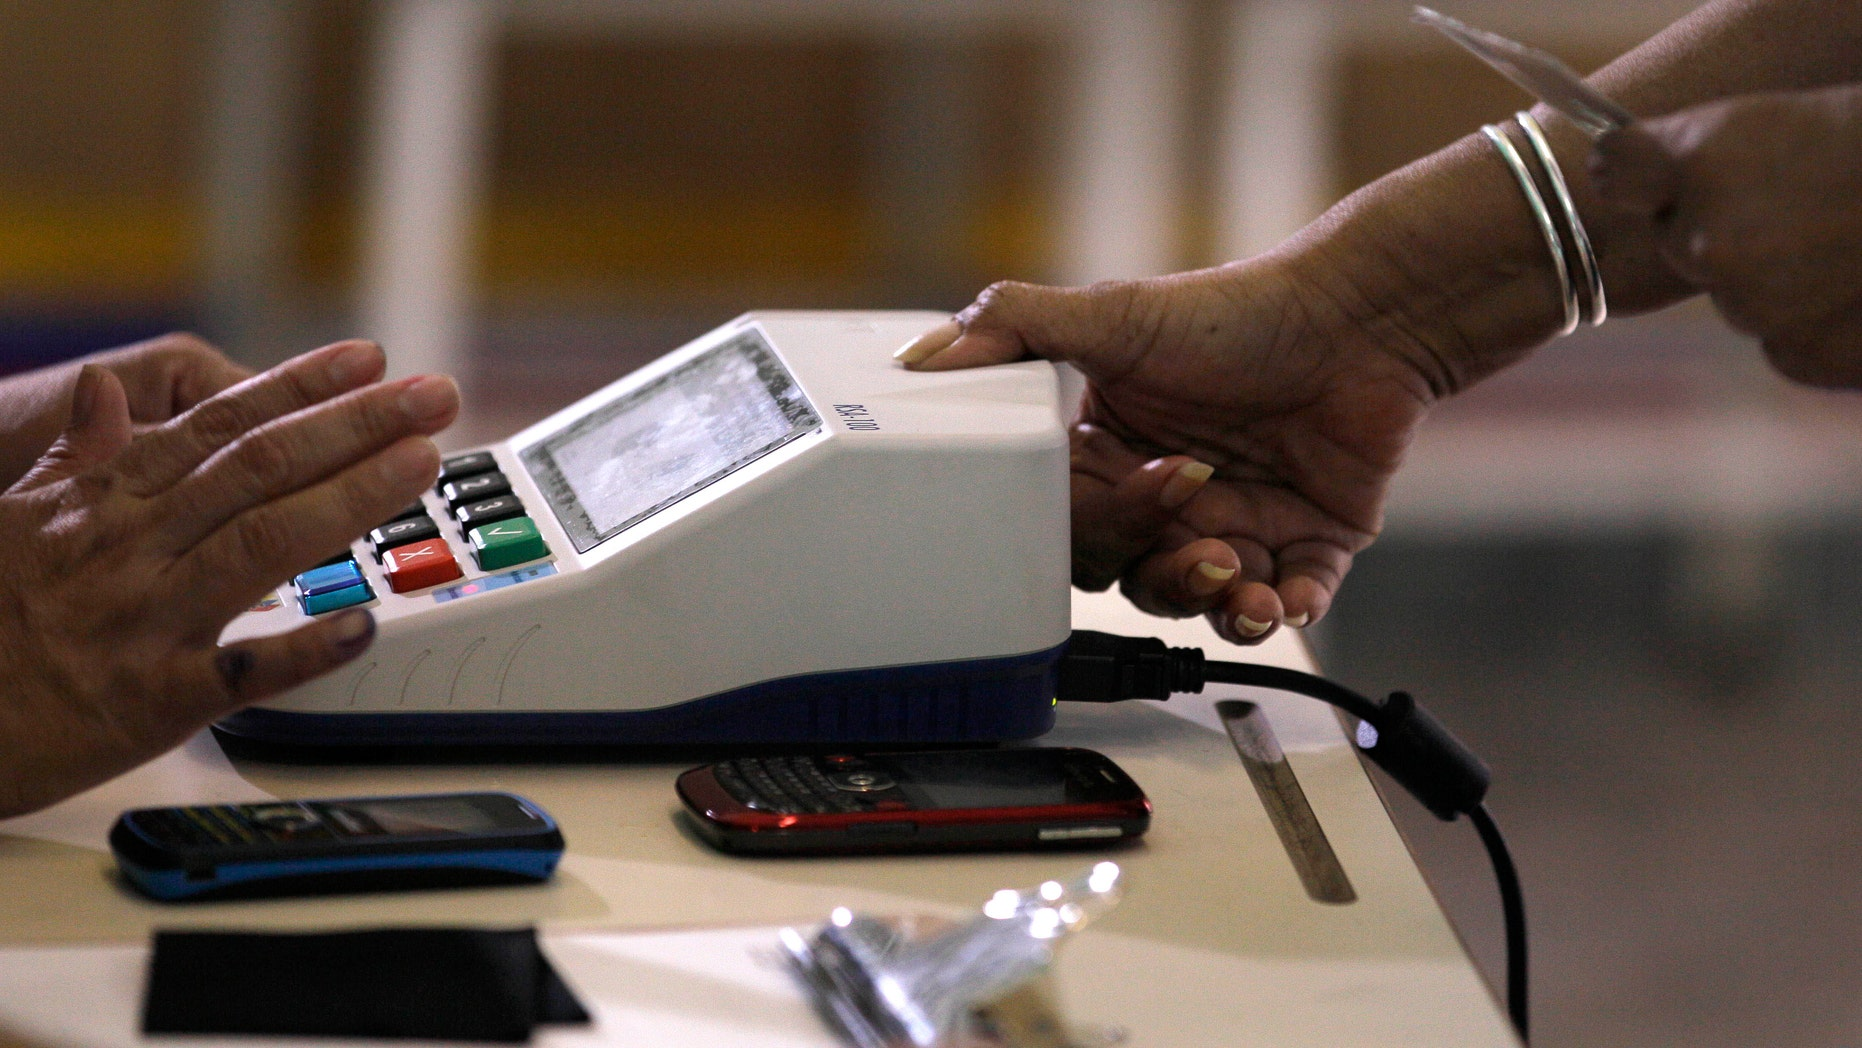 A voter uses a fingerprint scanner during a mock election to simulate upcoming Oct. 7 presidential election at a polling station in Caracas, Venezuela, Sunday, Aug. 5, 2012. (AP Photo/Fernando Llano)